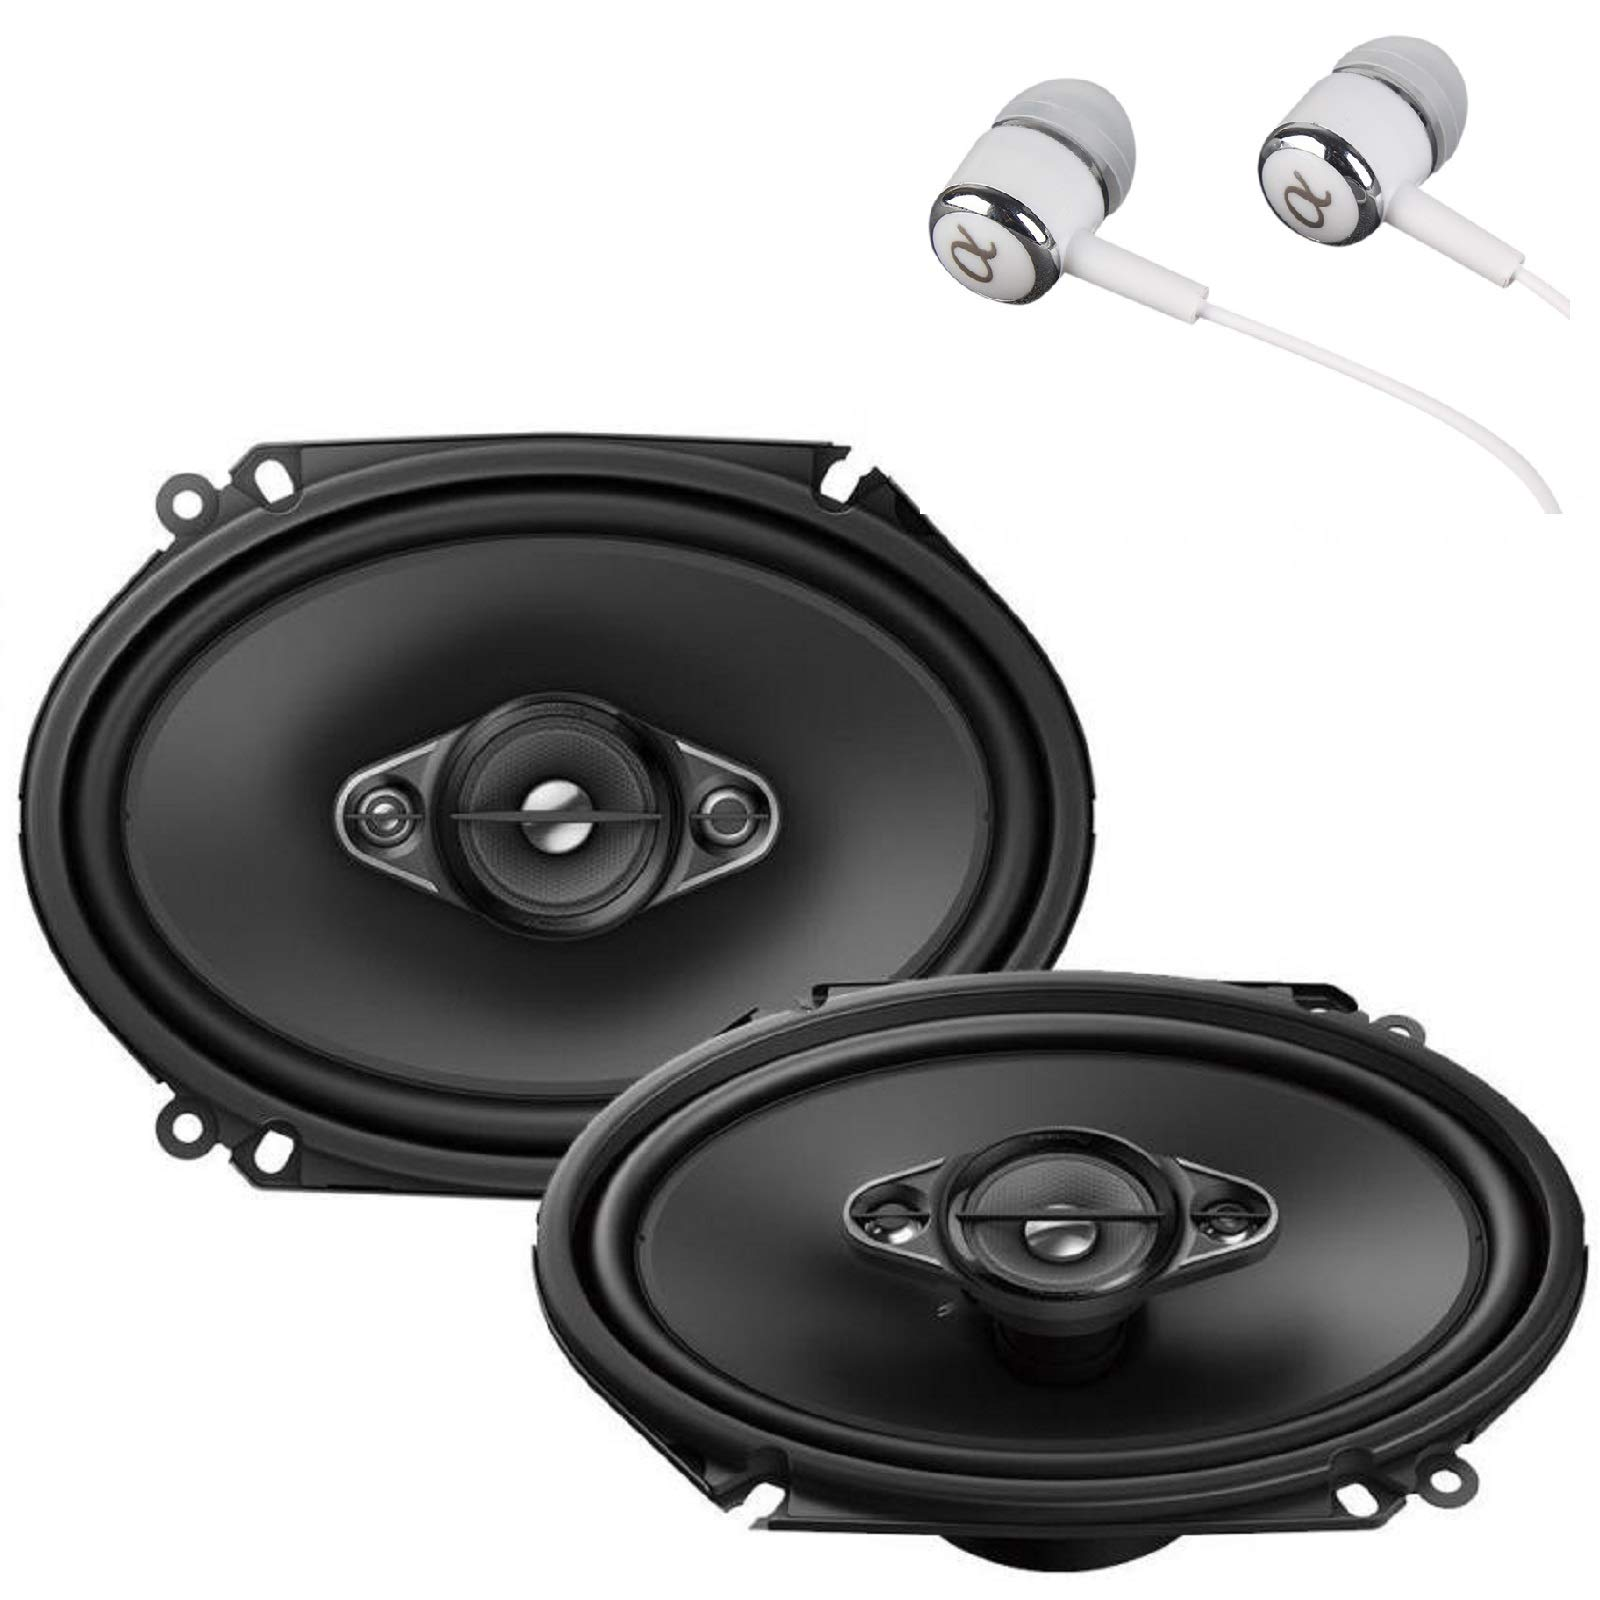 Pioneer TS-A6880F 6'' x 8'' 350 Watts Max Power A-Series 4-Way Car Audio Coaxial Speakers Pair with Fiber Cone Midrange/Free ALPHASONIK Earbuds